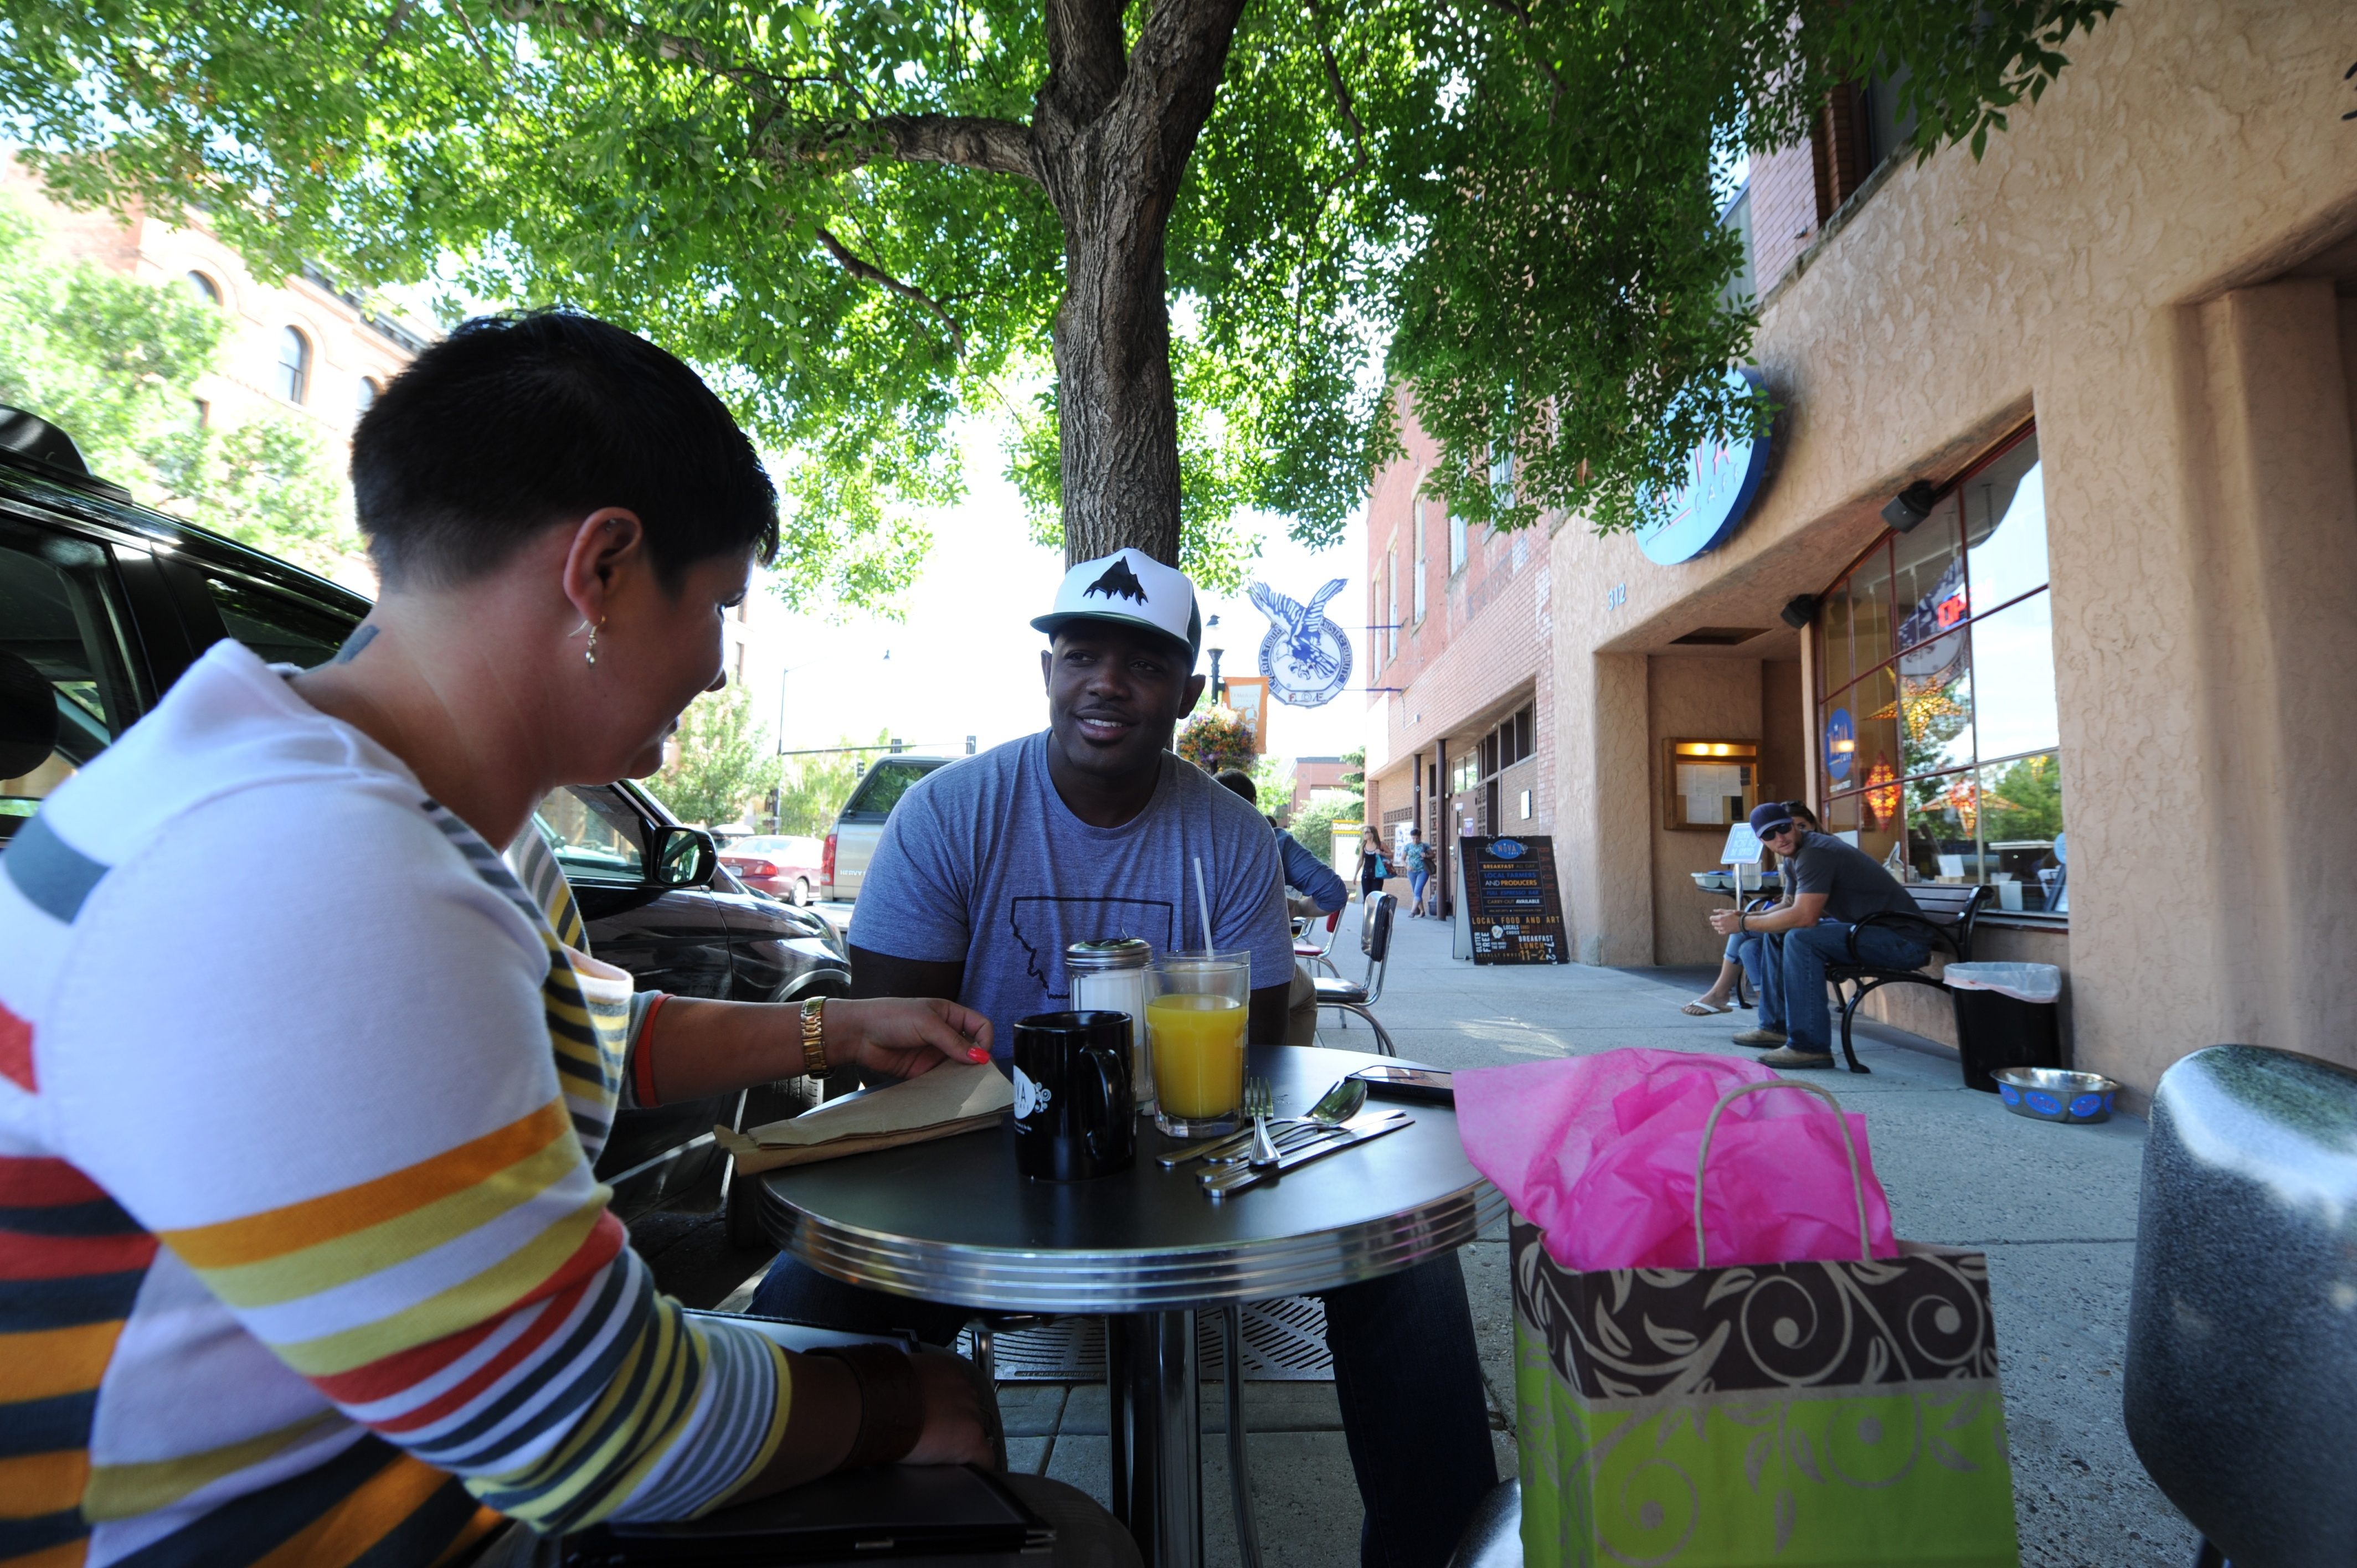 Dining in downtown Bozeman